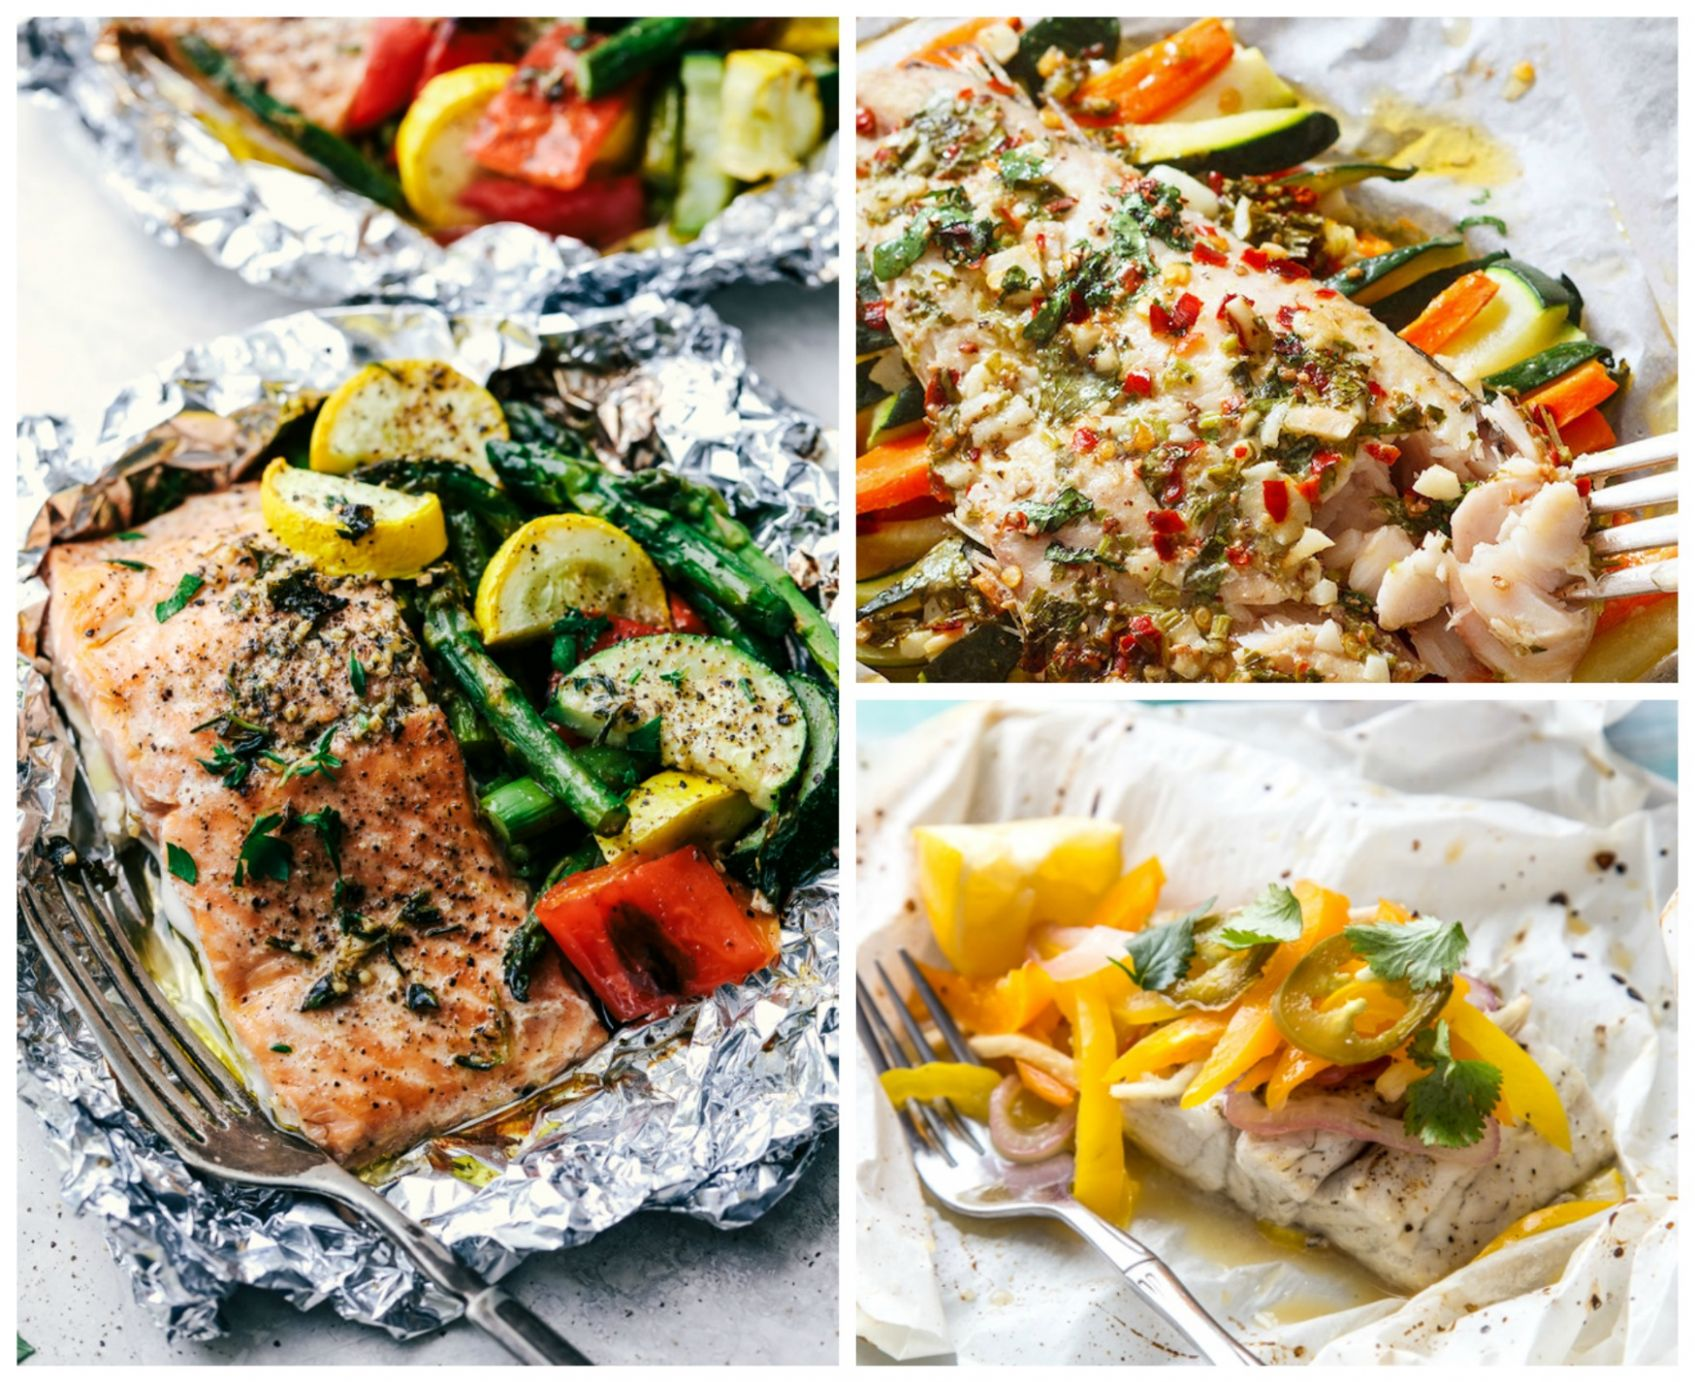 11 Easy Fish Foil Packet Dinners for Healthy Weight Loss - Recipe Fish On The Grill In Foil